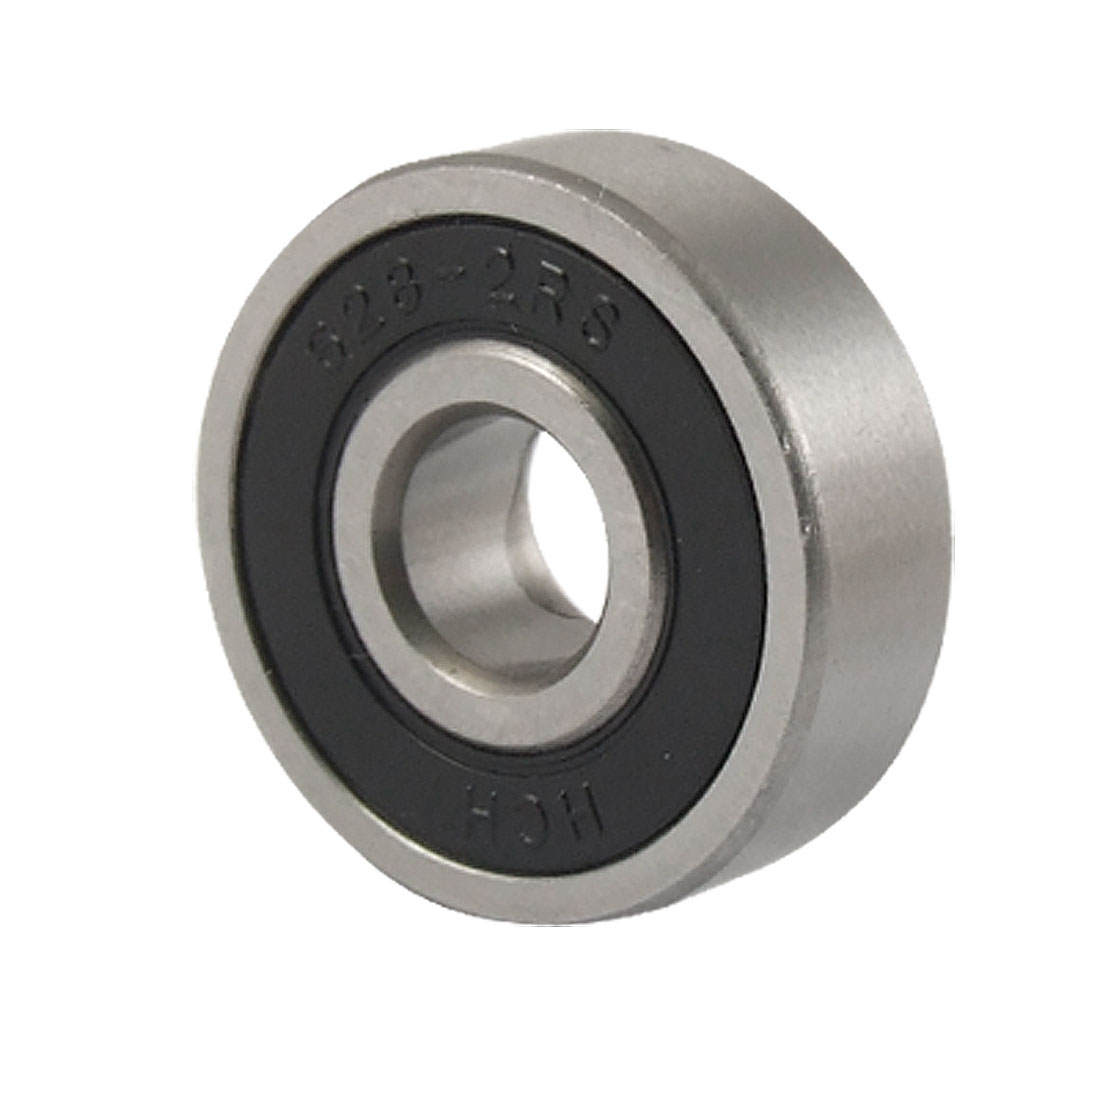 Replacement 628 2RS Double Sealed Motor Ball Bearing 8mm